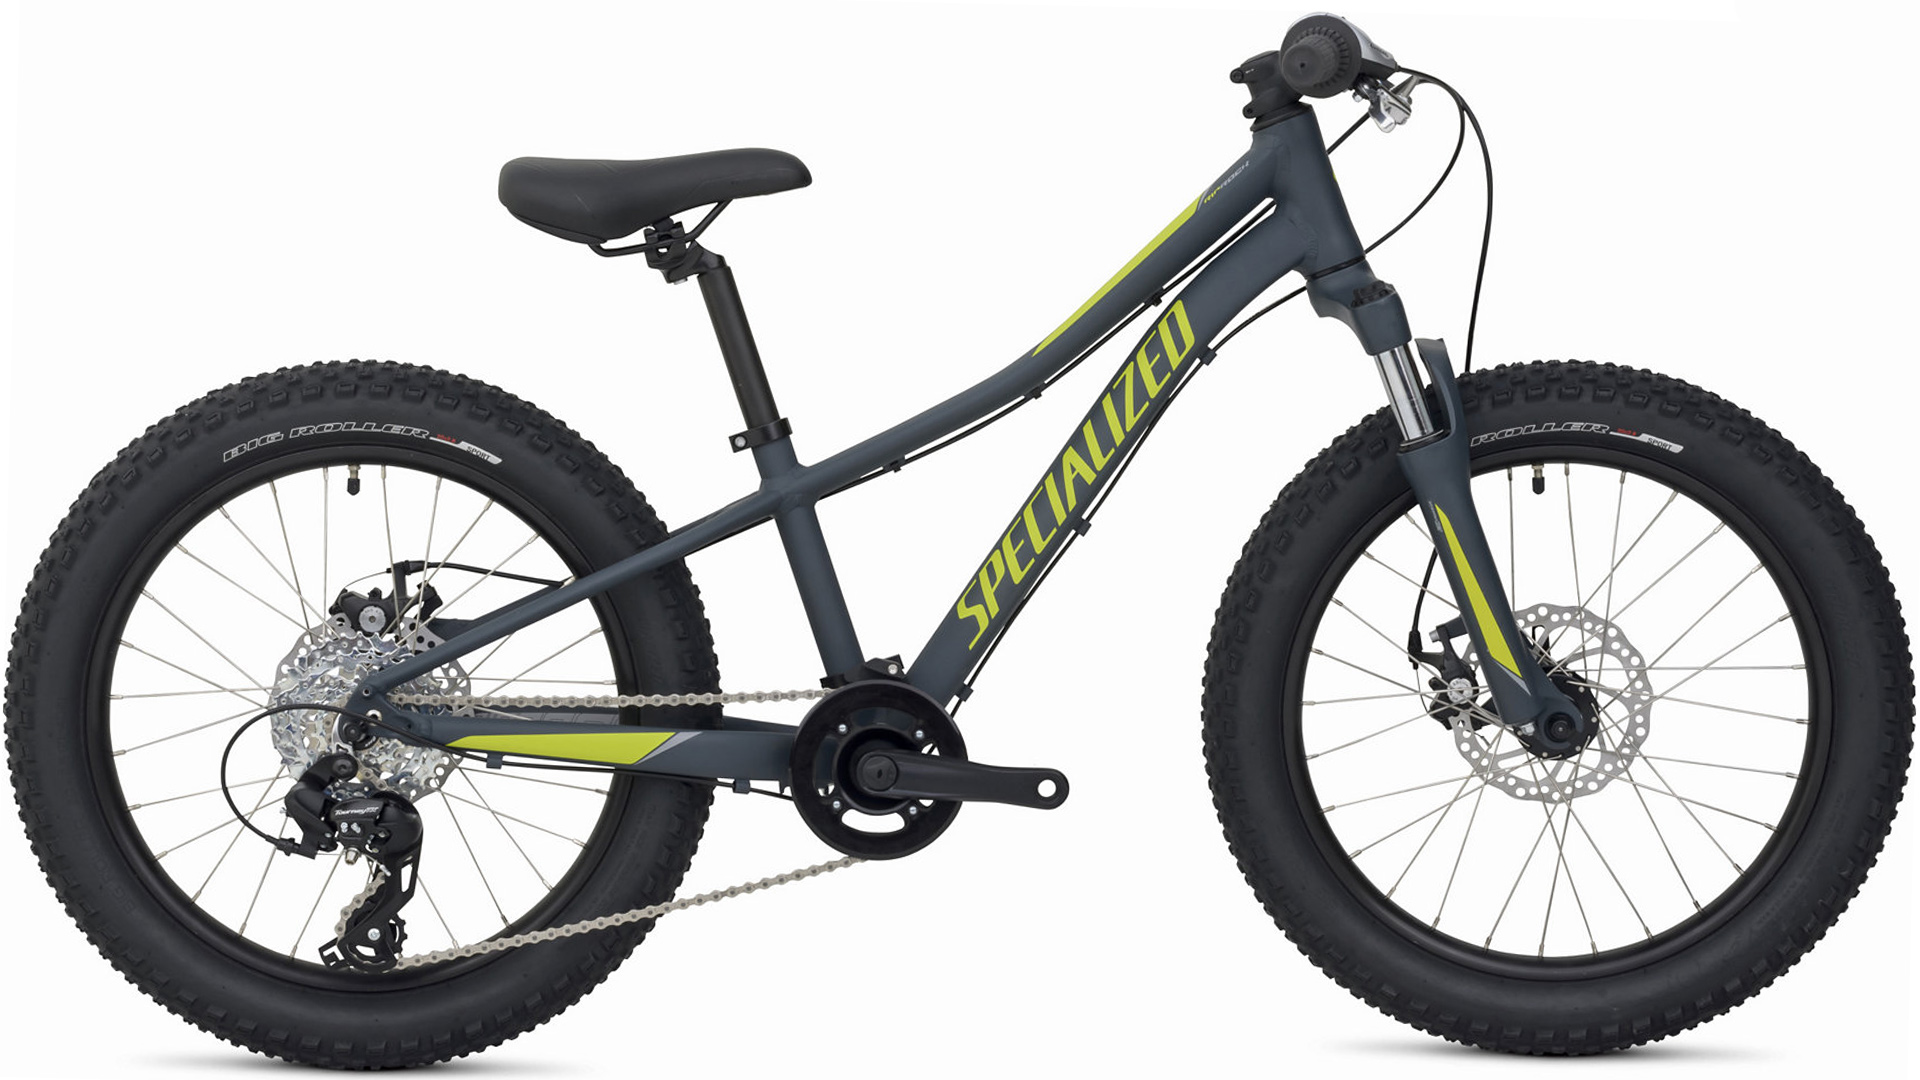 Campana Radsport – Specialized Riprock 20